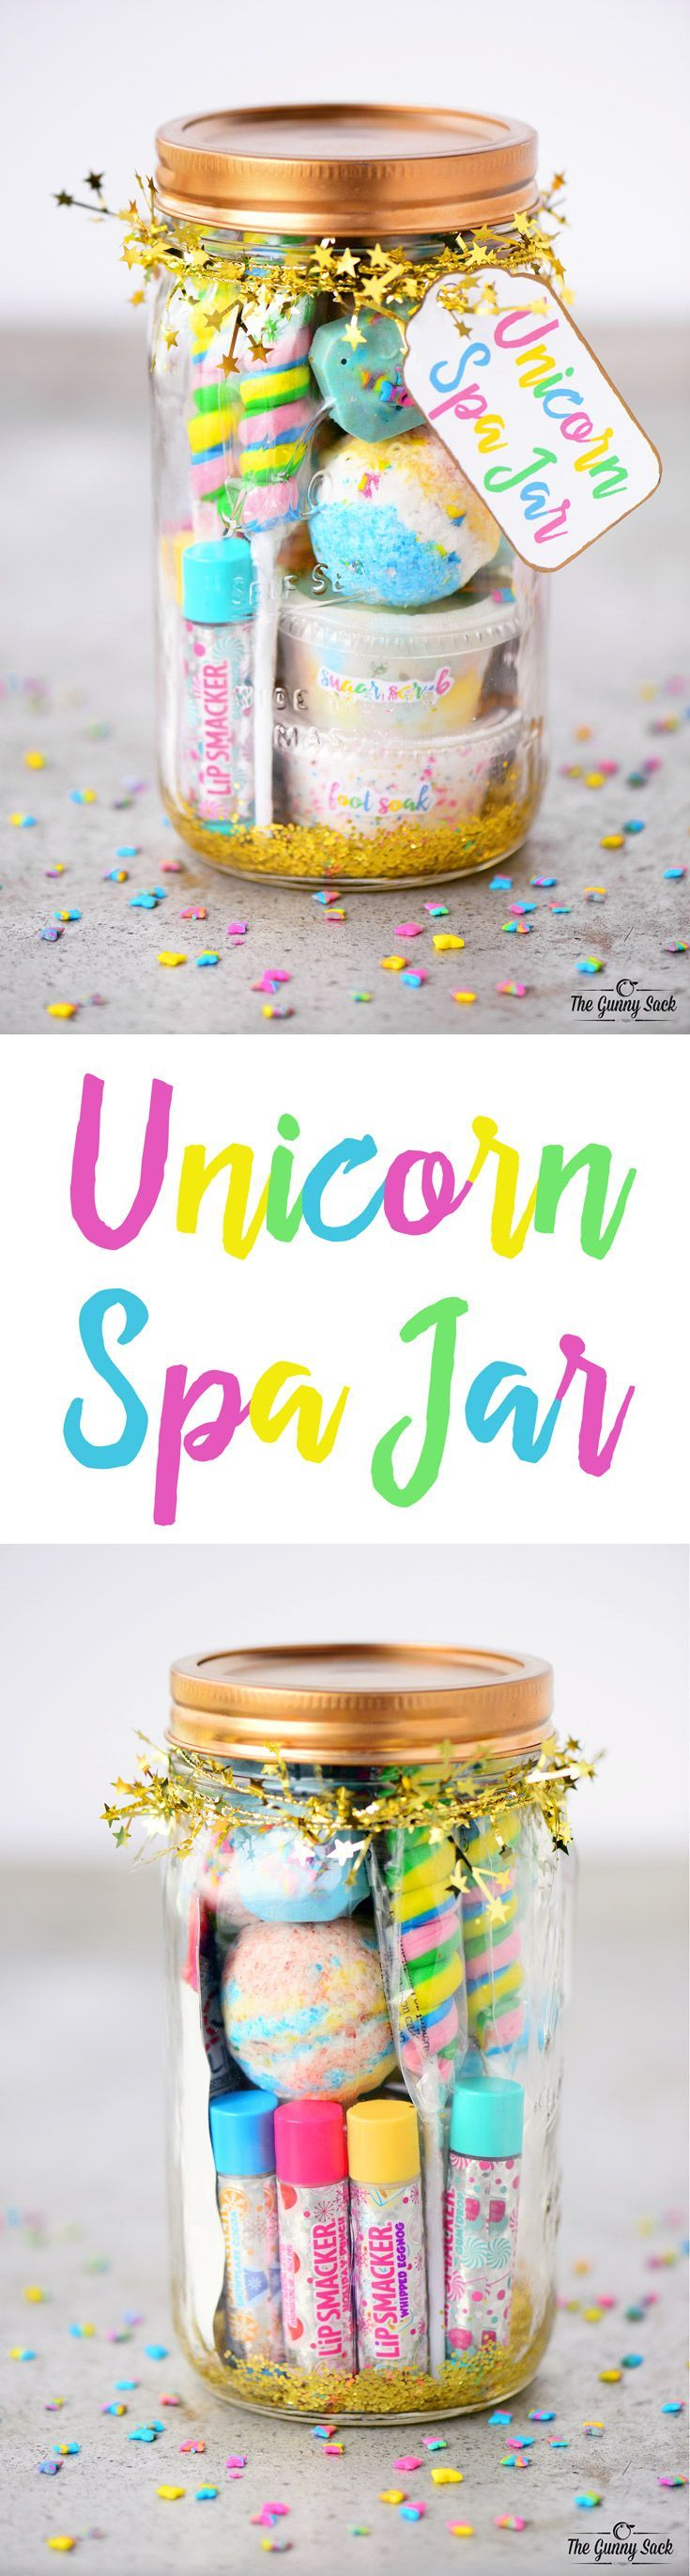 This Unicorn Spa Jar Is For The Girly Girls Your Life Who Love All Things Sparkly And Colorful They Can Use Fun Gift In A To Have